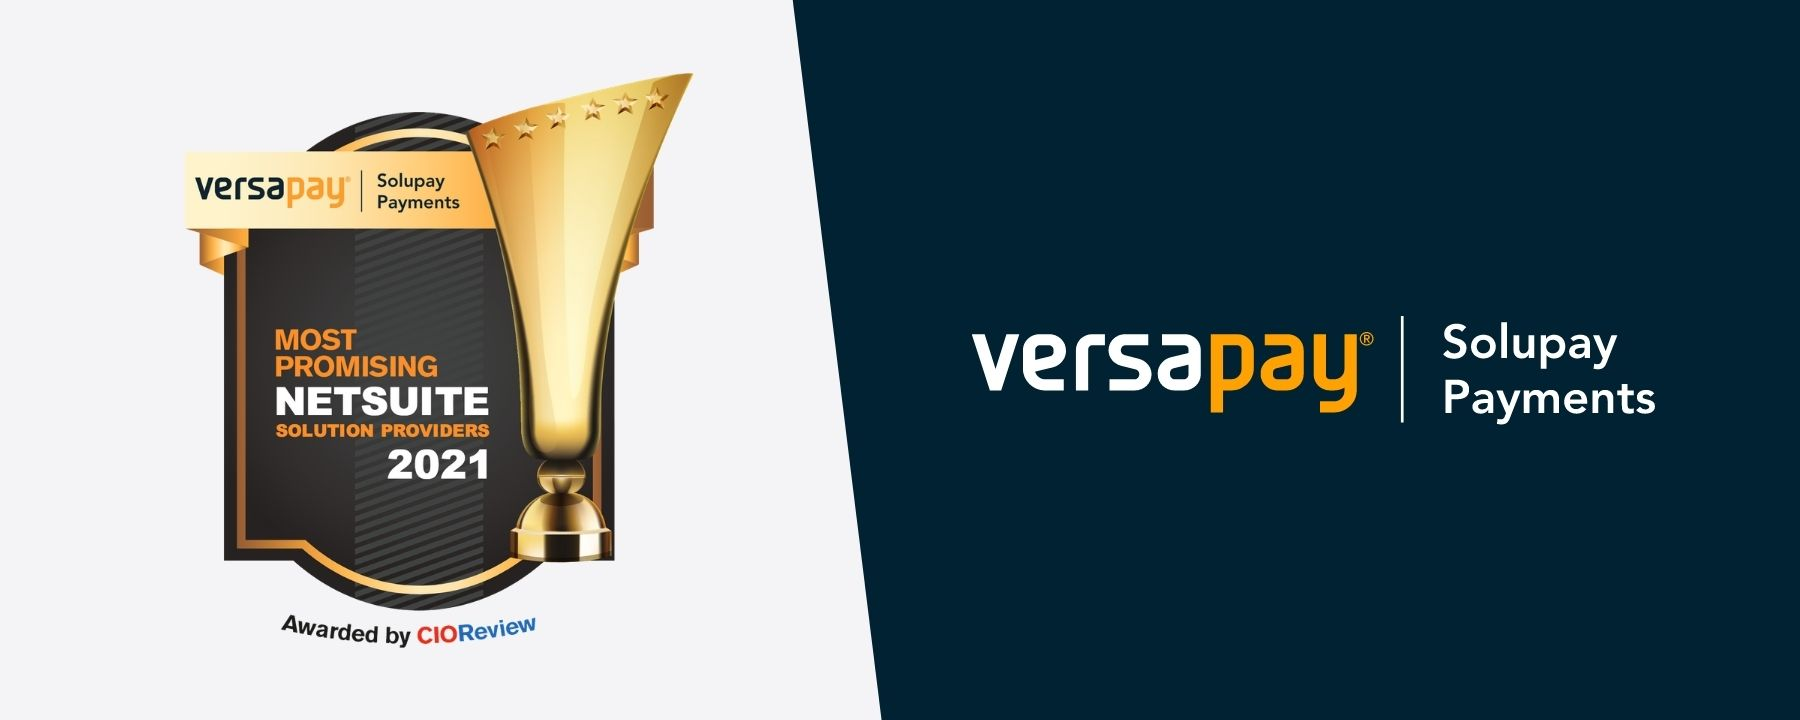 Versapay Named Most Promising NetSuite Solution Provider of 2021